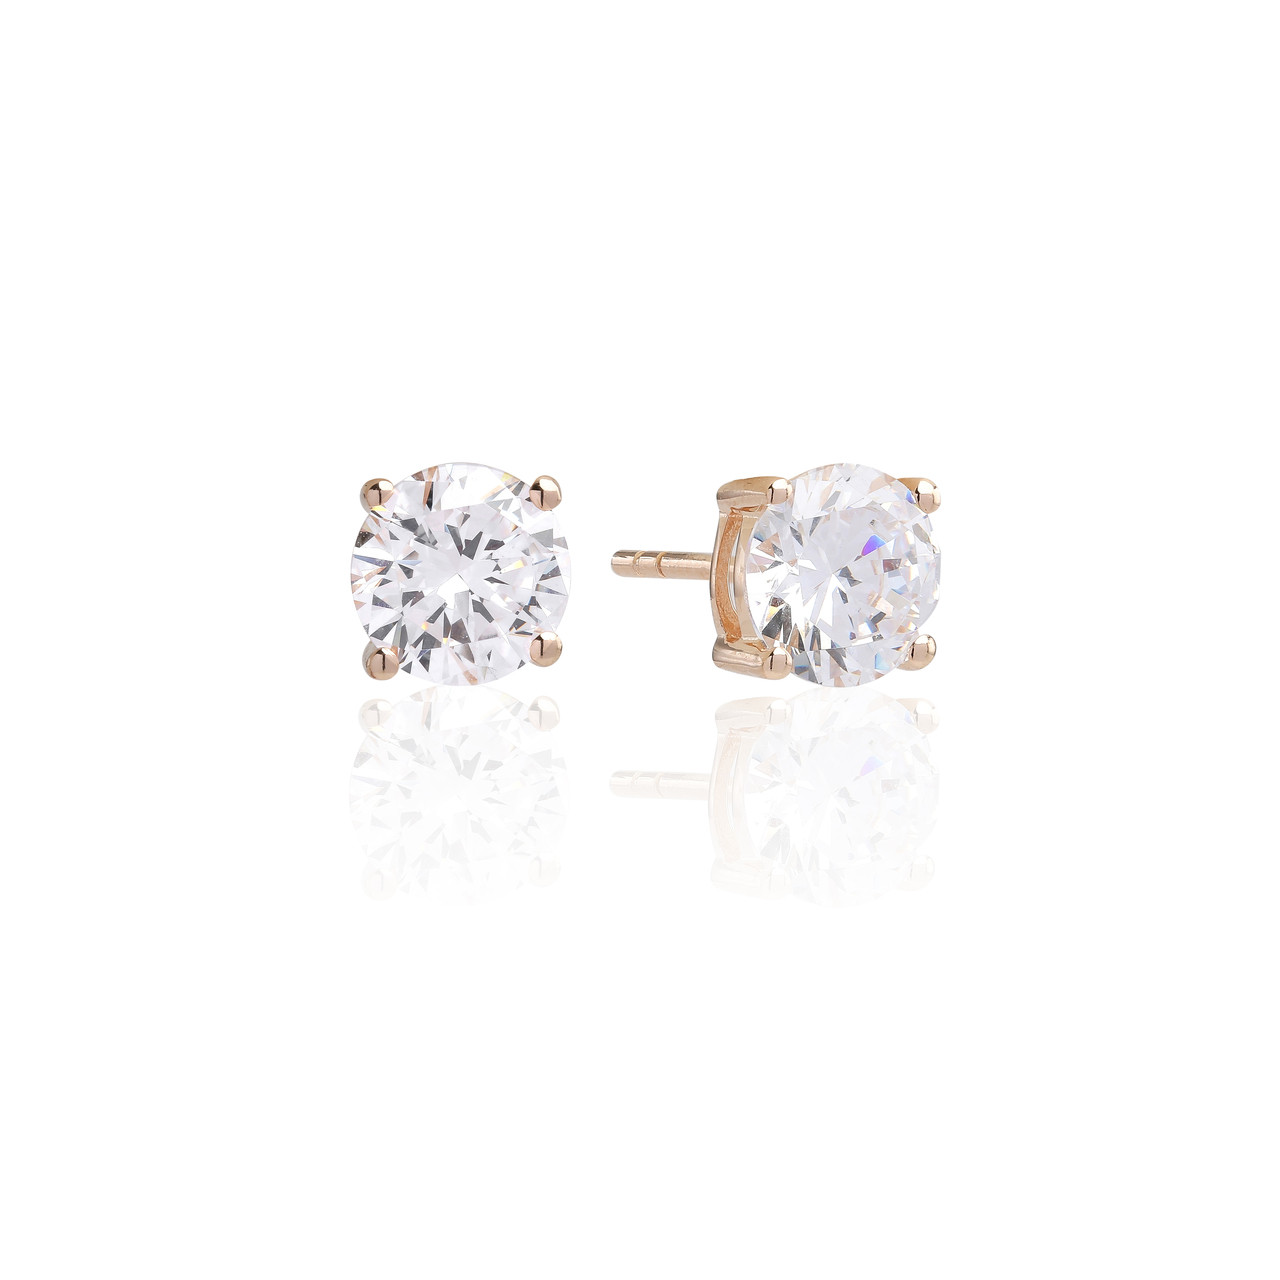 1d8f1cd56 Sif Jakobs Princess Earrings | Spangle.co.uk | Free Delivery